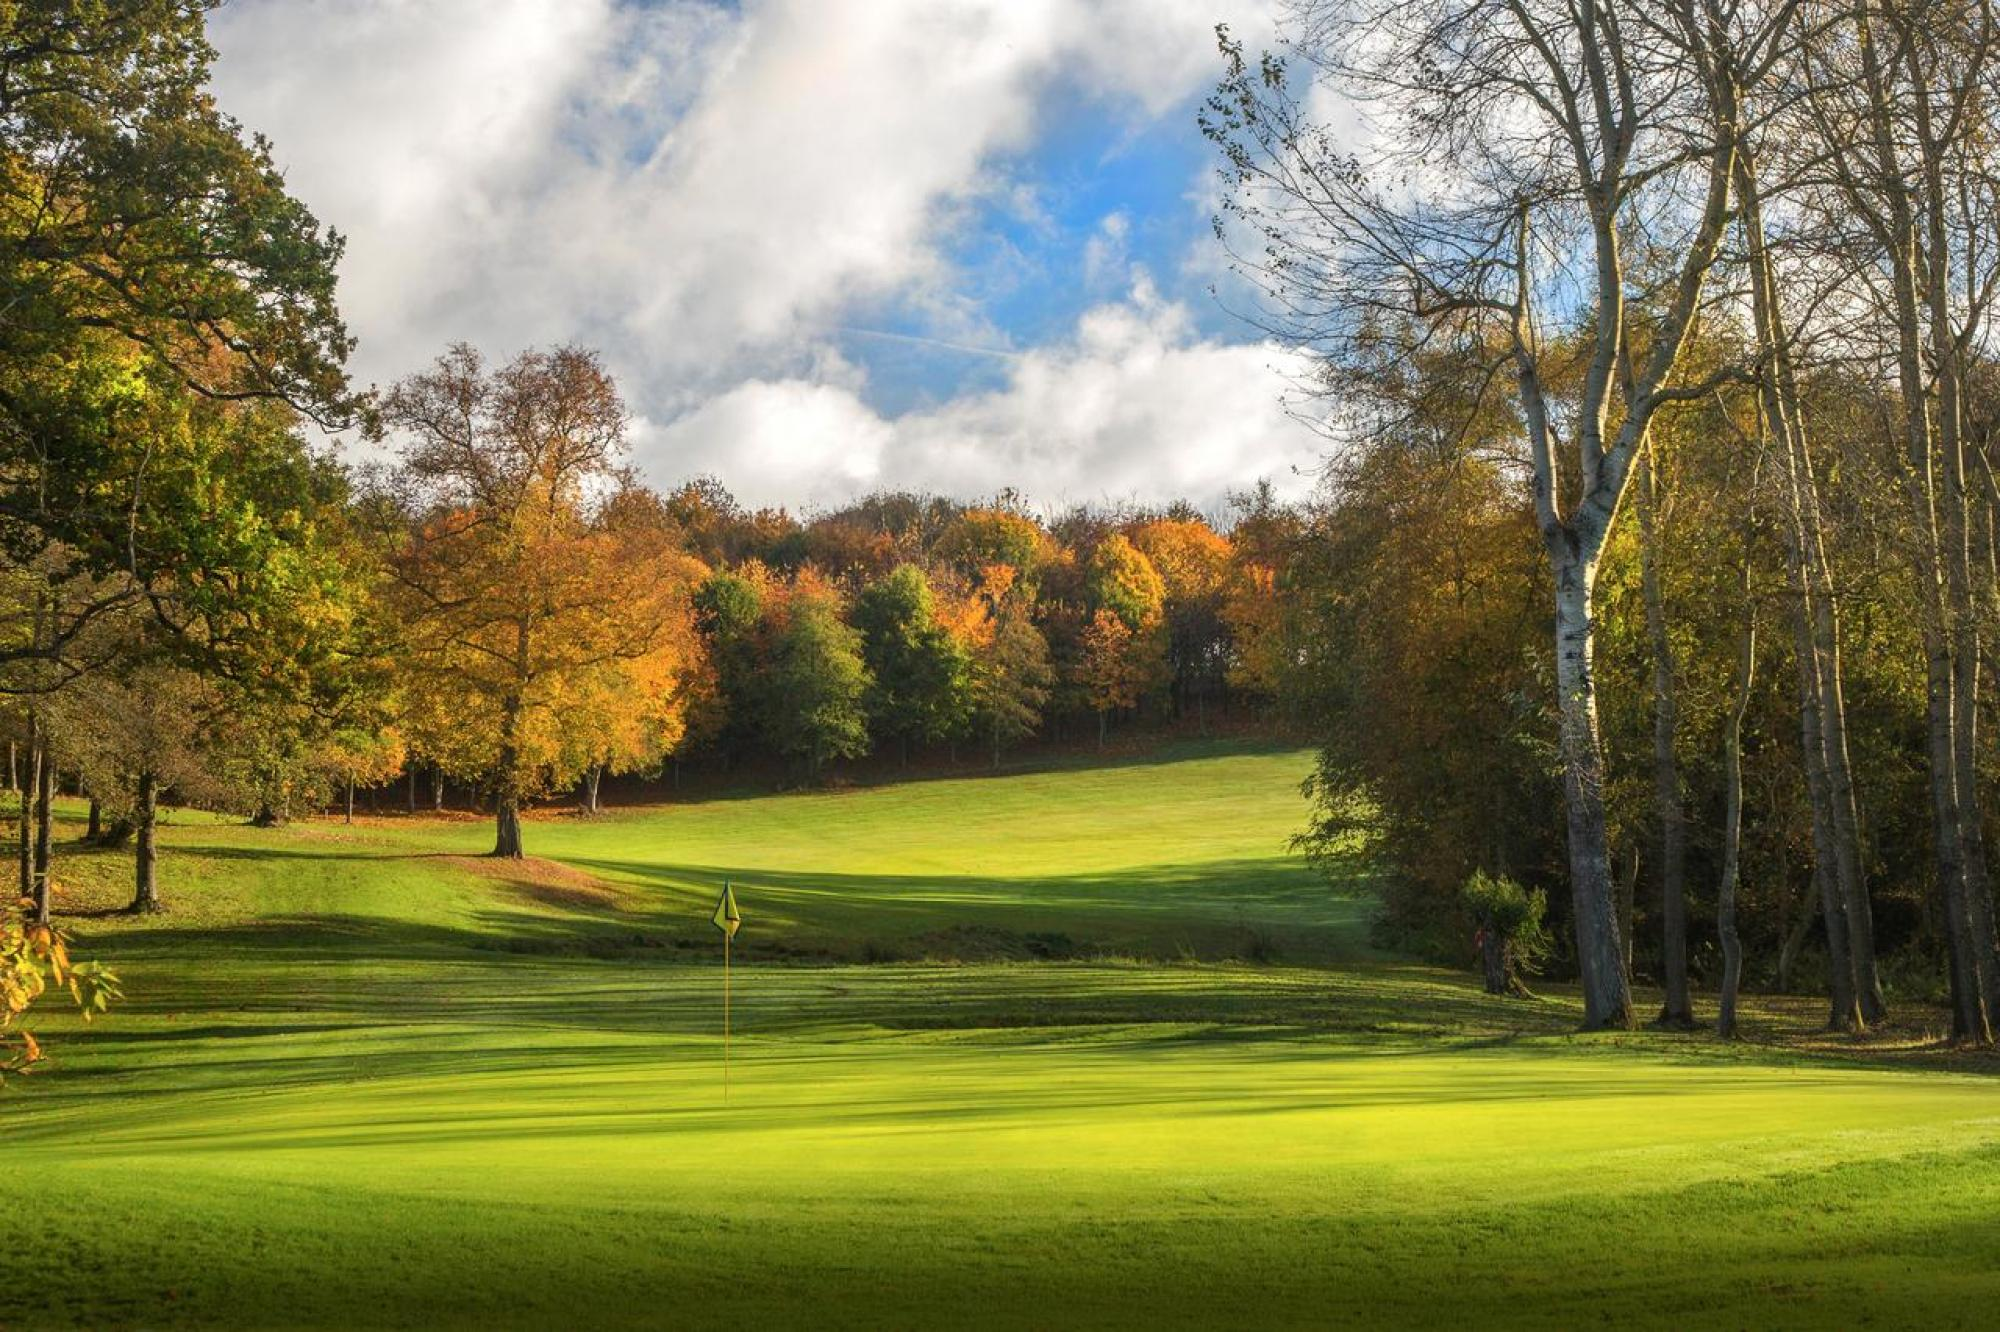 The Sandford Springs Hotel  Golf Club's beautiful golf course situated in sensational Hampshire.